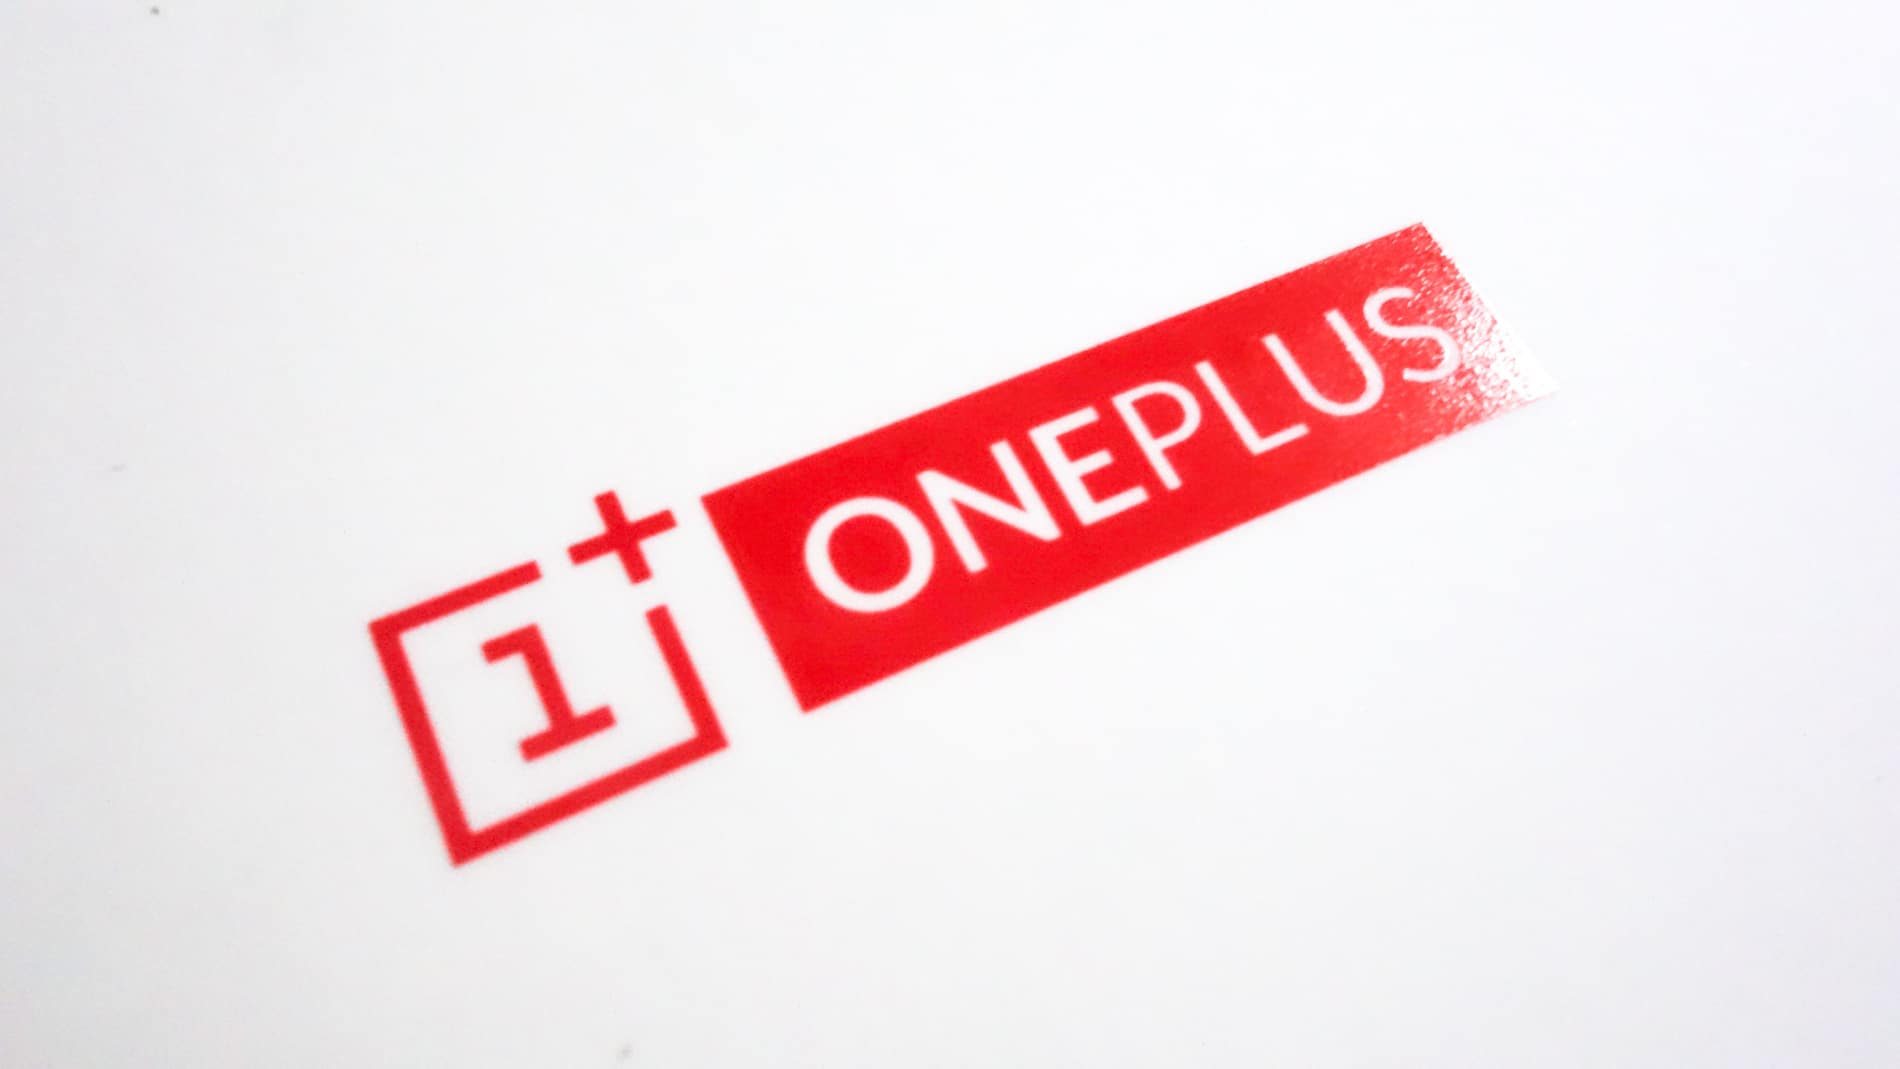 OnePlus has published a list of devices that will receive Oxygen OS 11 updates TechRechard